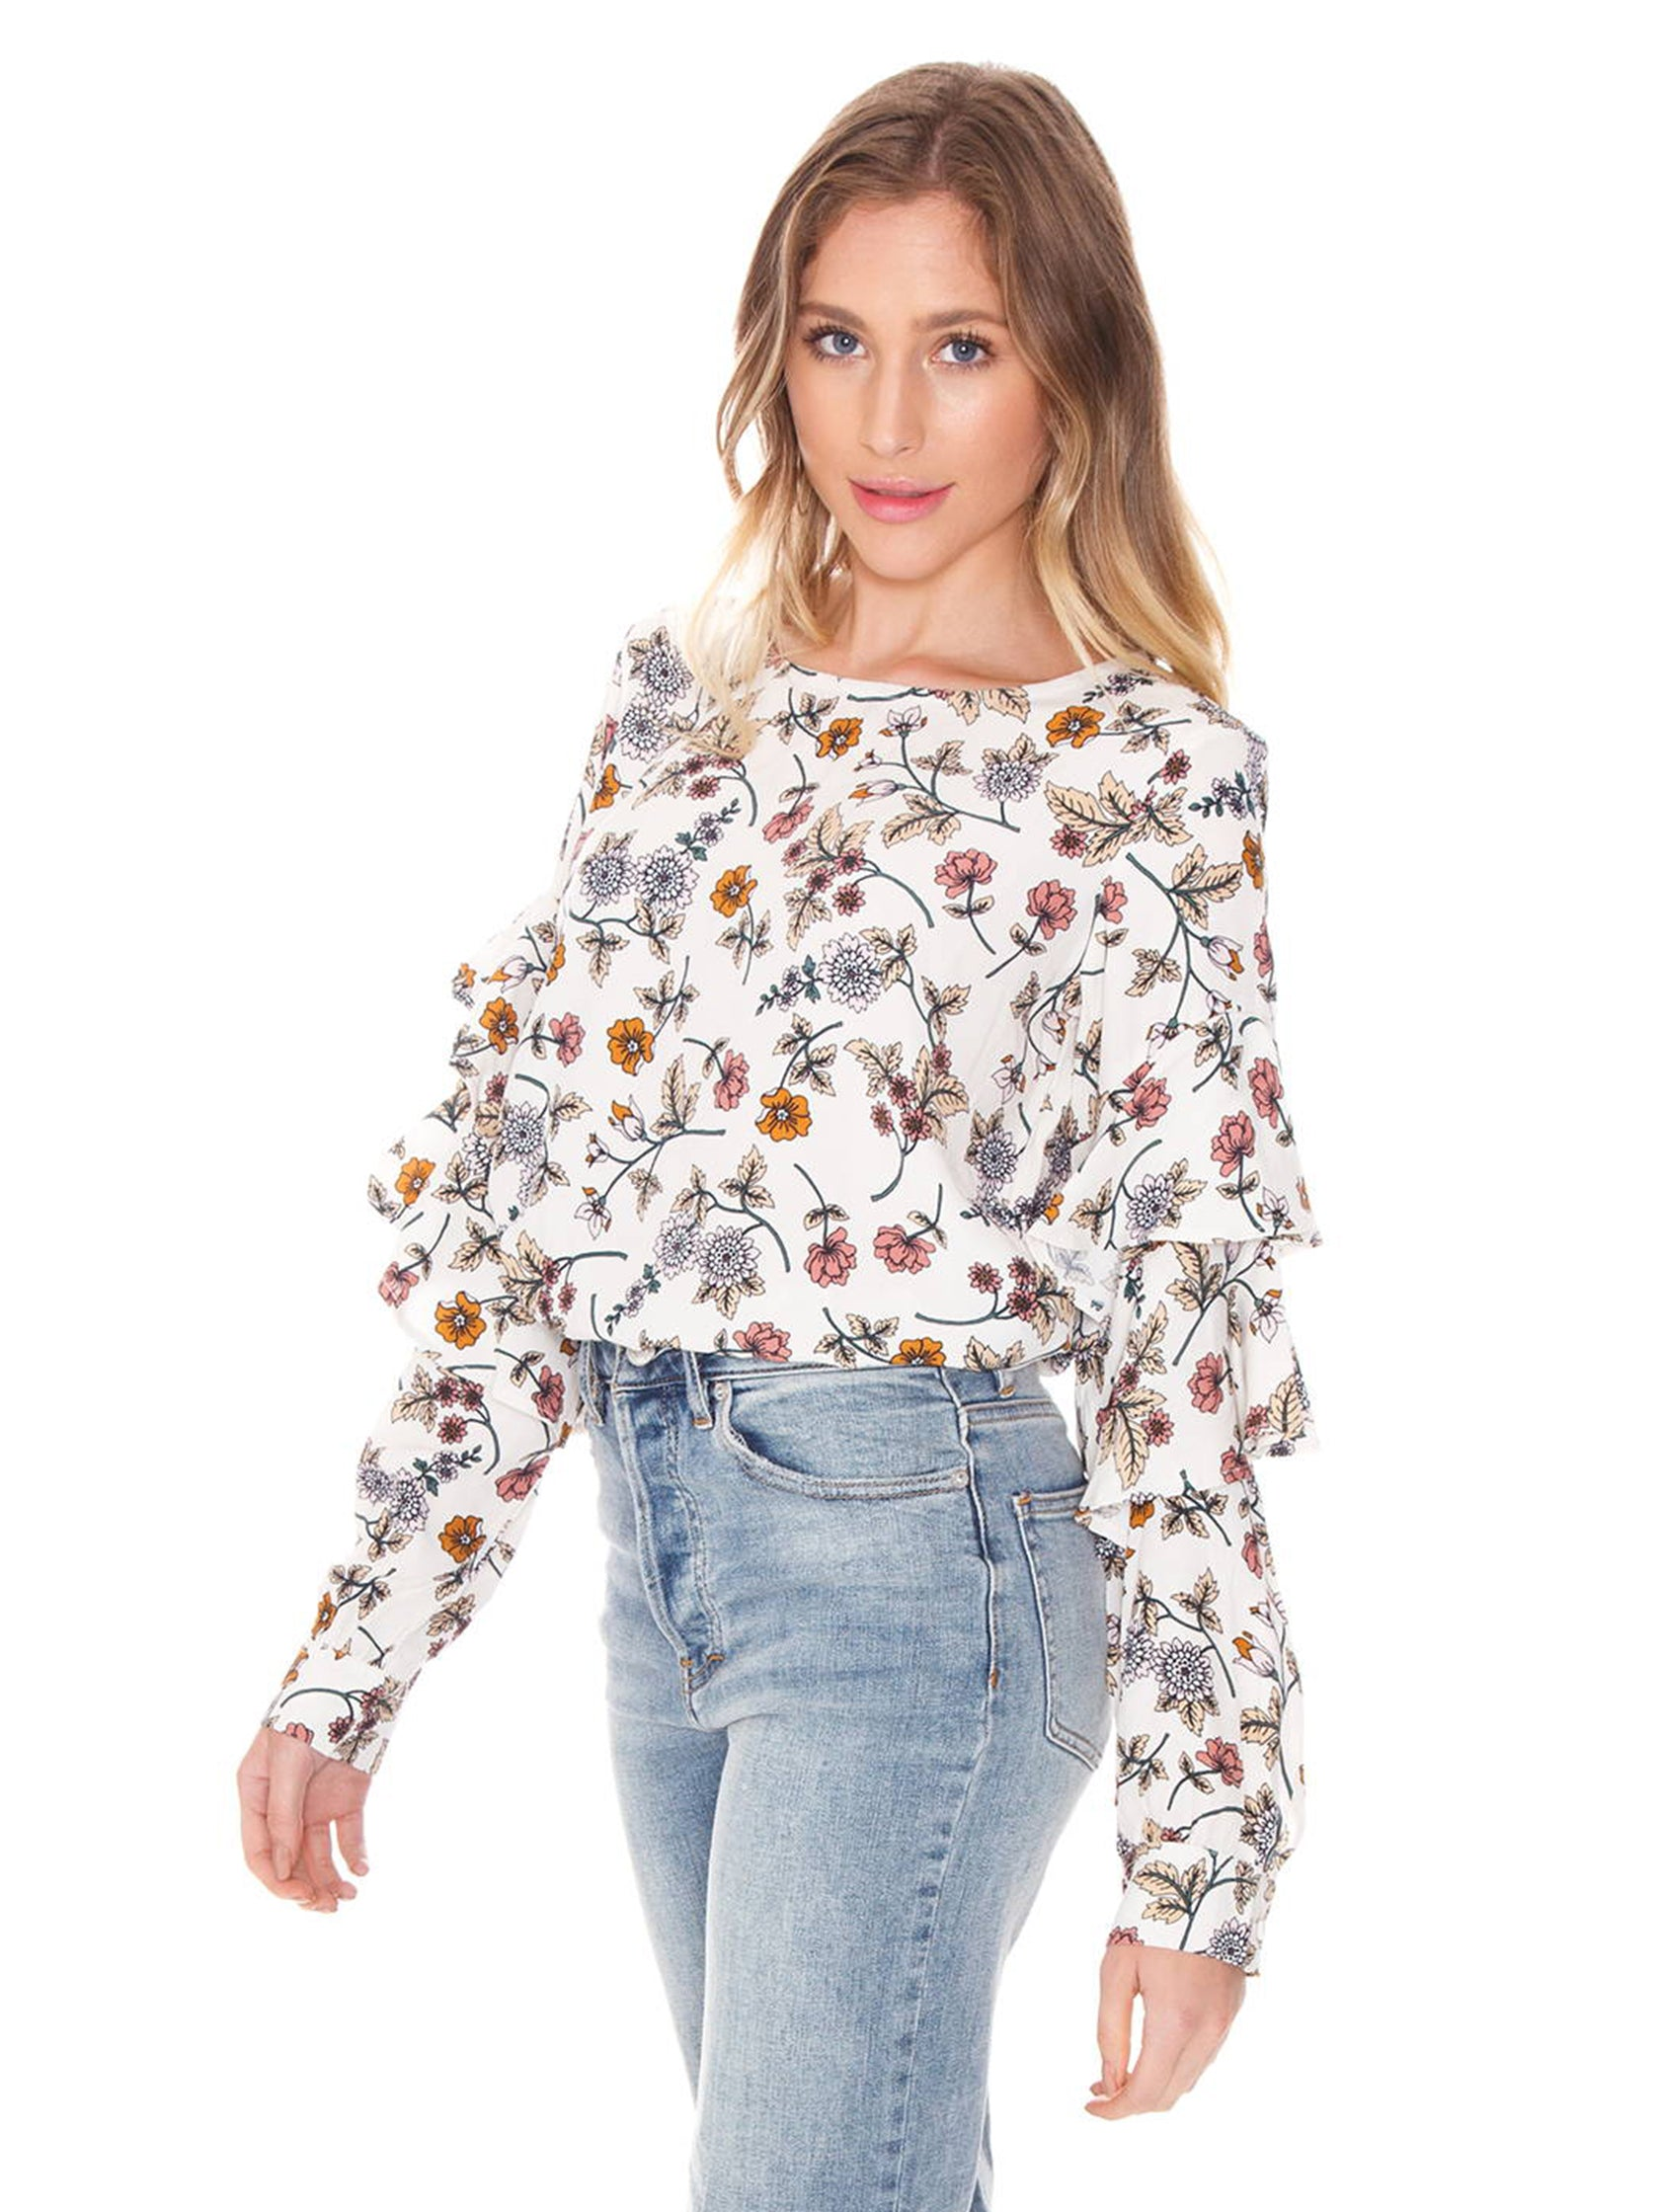 Women wearing a top rental from SANCTUARY called Tilly Flounce Sleeve Blouse